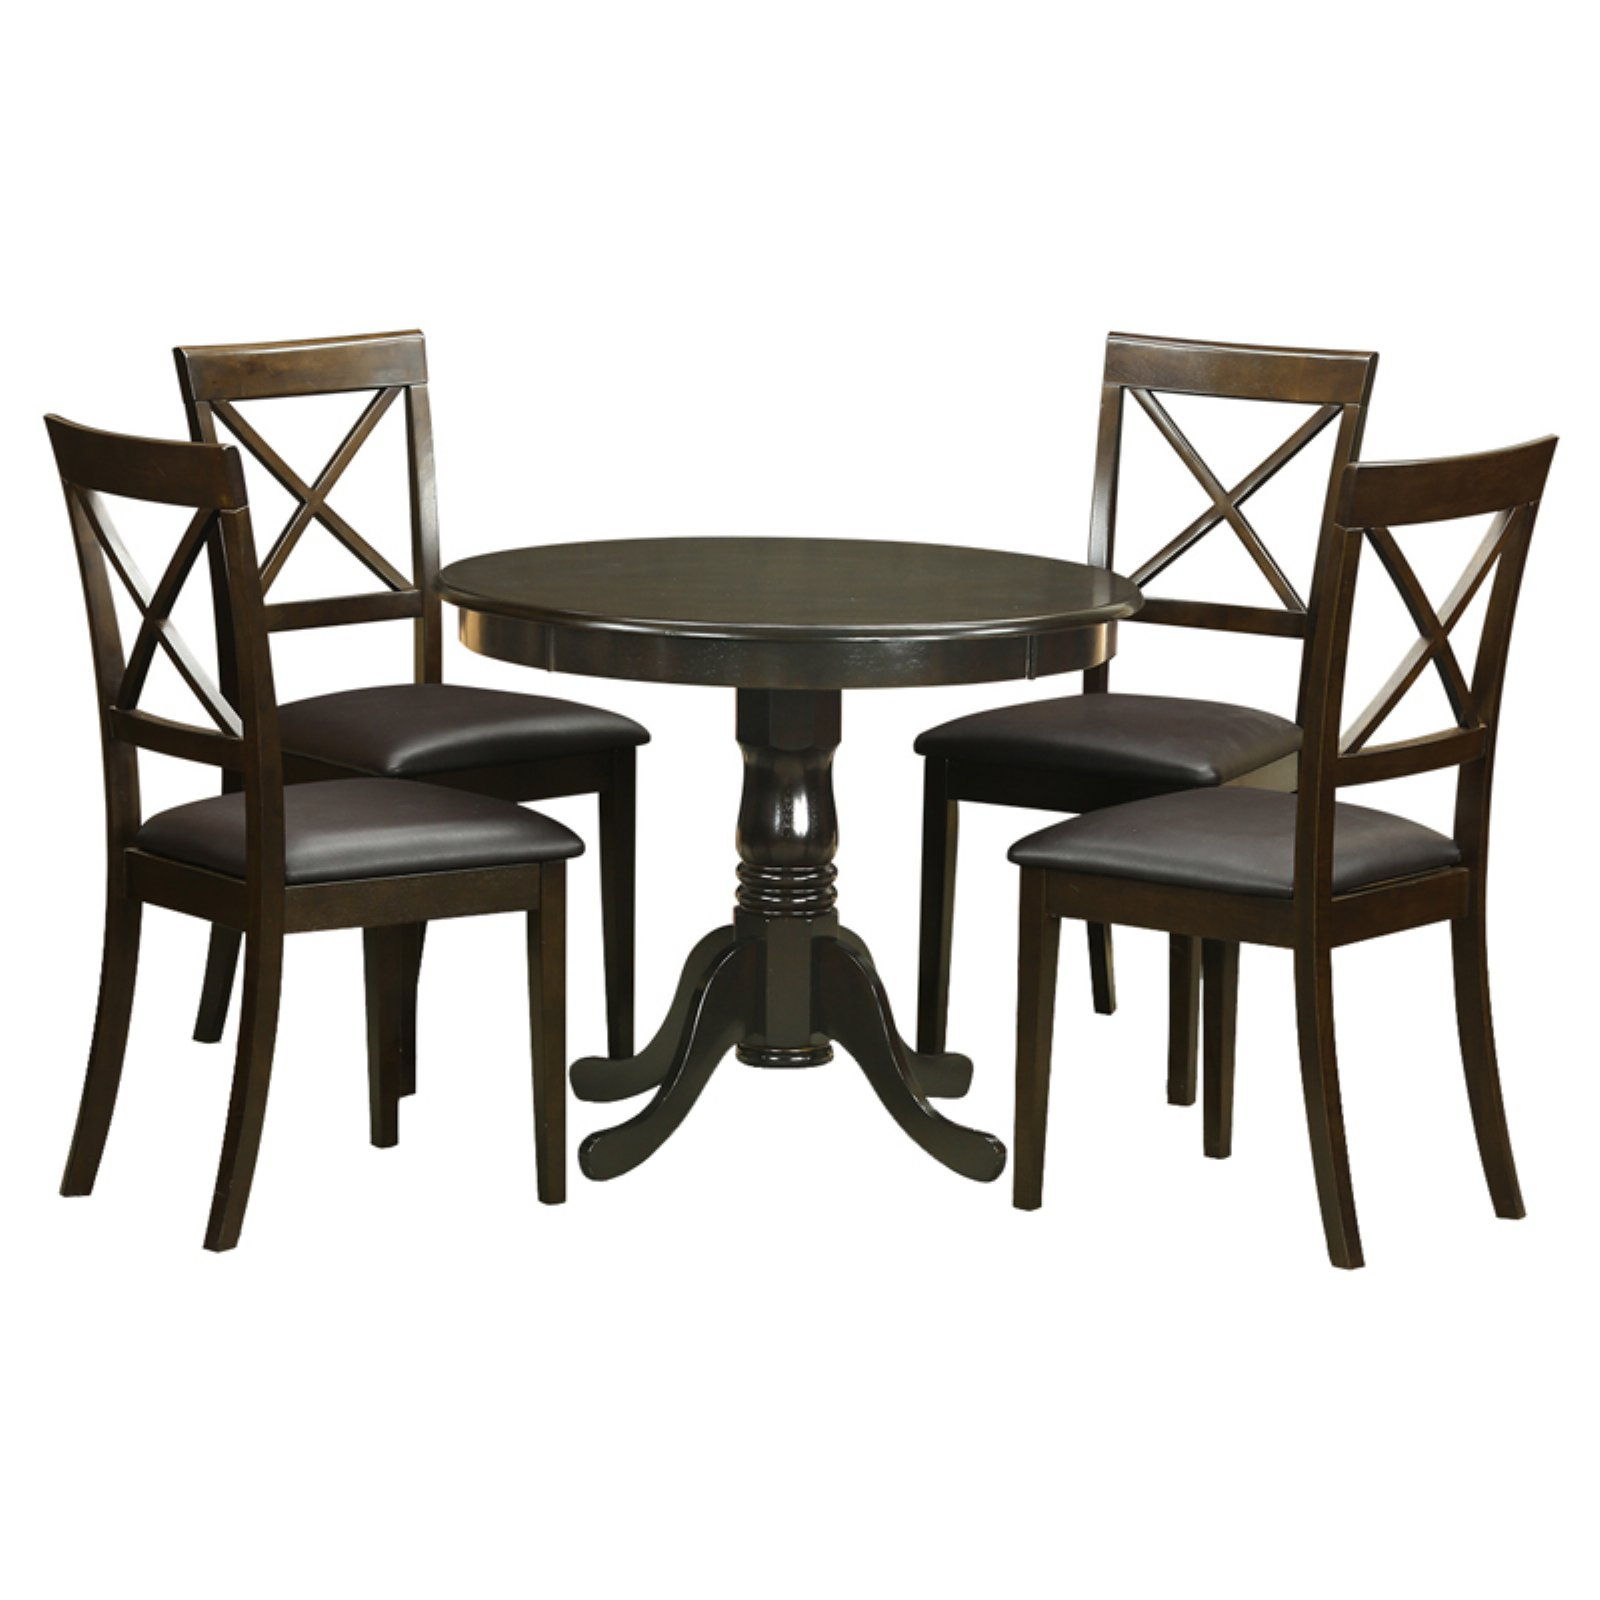 East West Furniture Antique 5 Piece Pedestal Round Dining Table Set with Boston Microfiber Seat Chairs